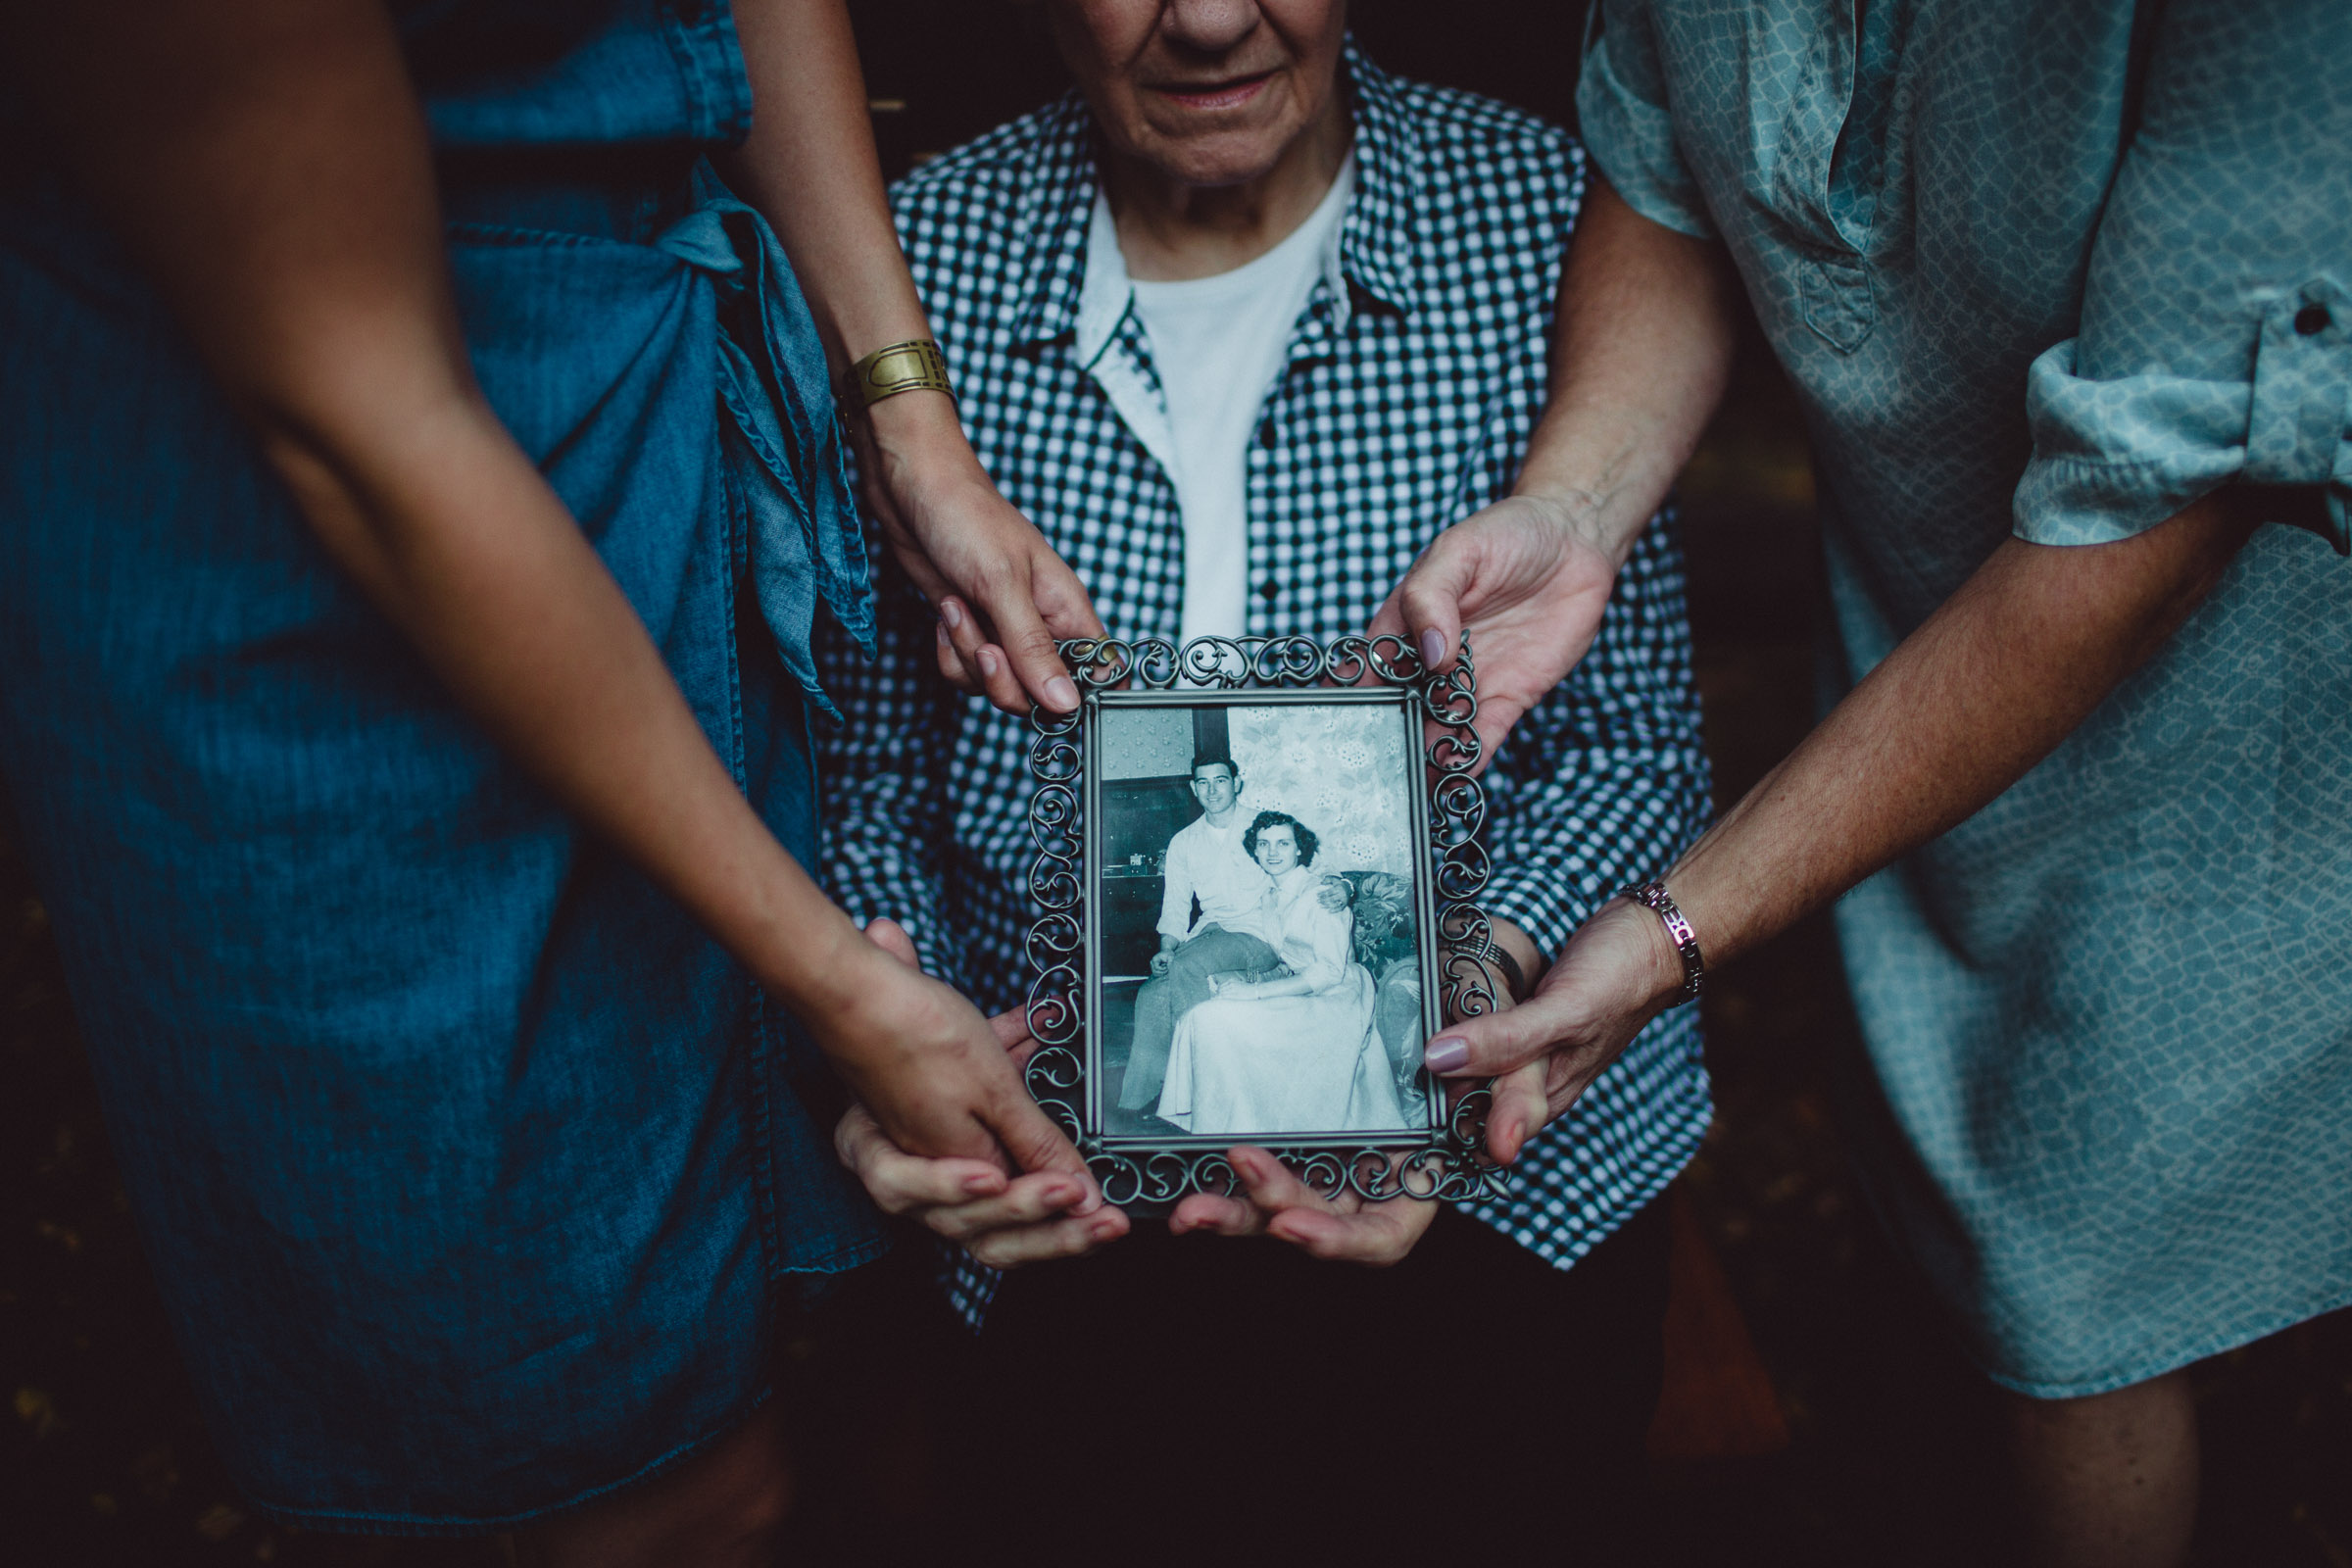 3 generations of women holding a frame of their loved one